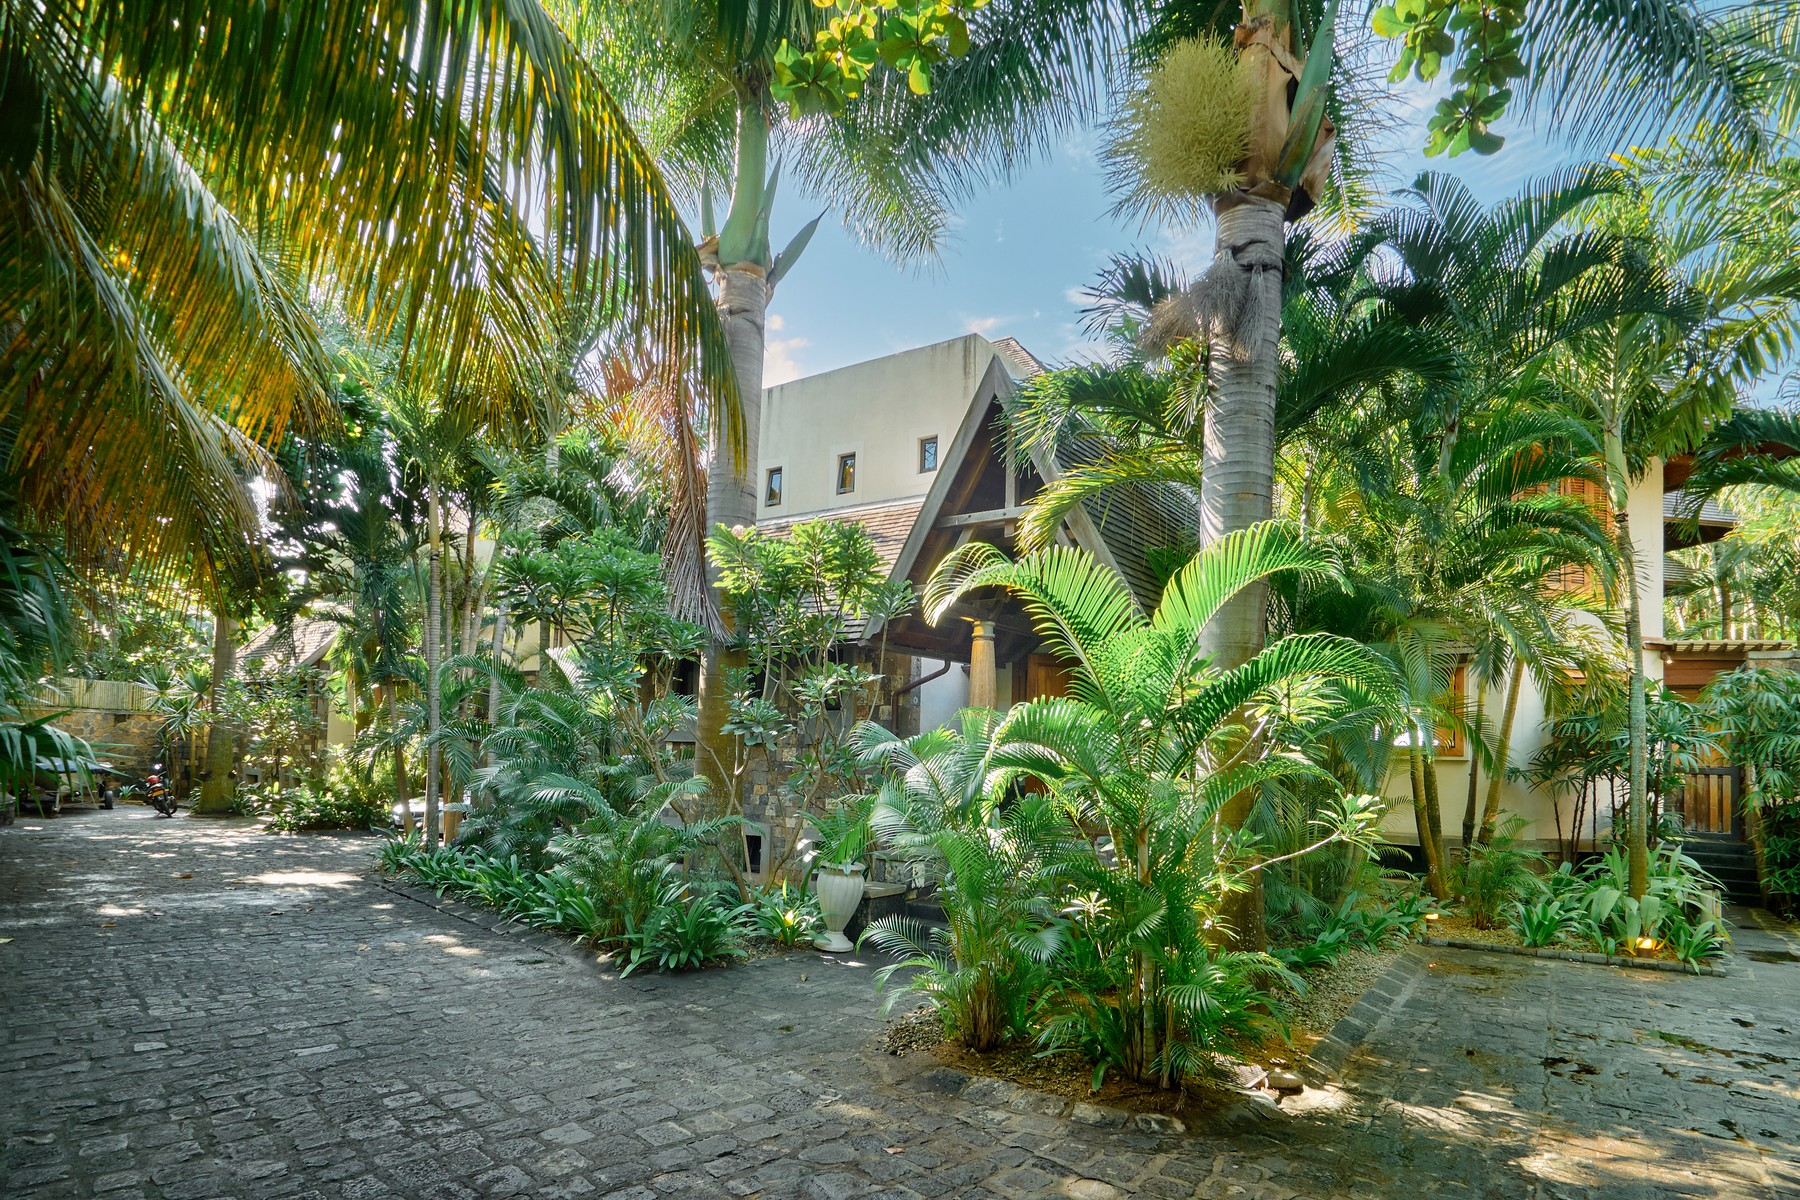 Single Family Home for Sale at Exquisite modern - Tropical Oceanfrontage Other Riviere Du Rempart, Riviere Du Rempart, Mauritius